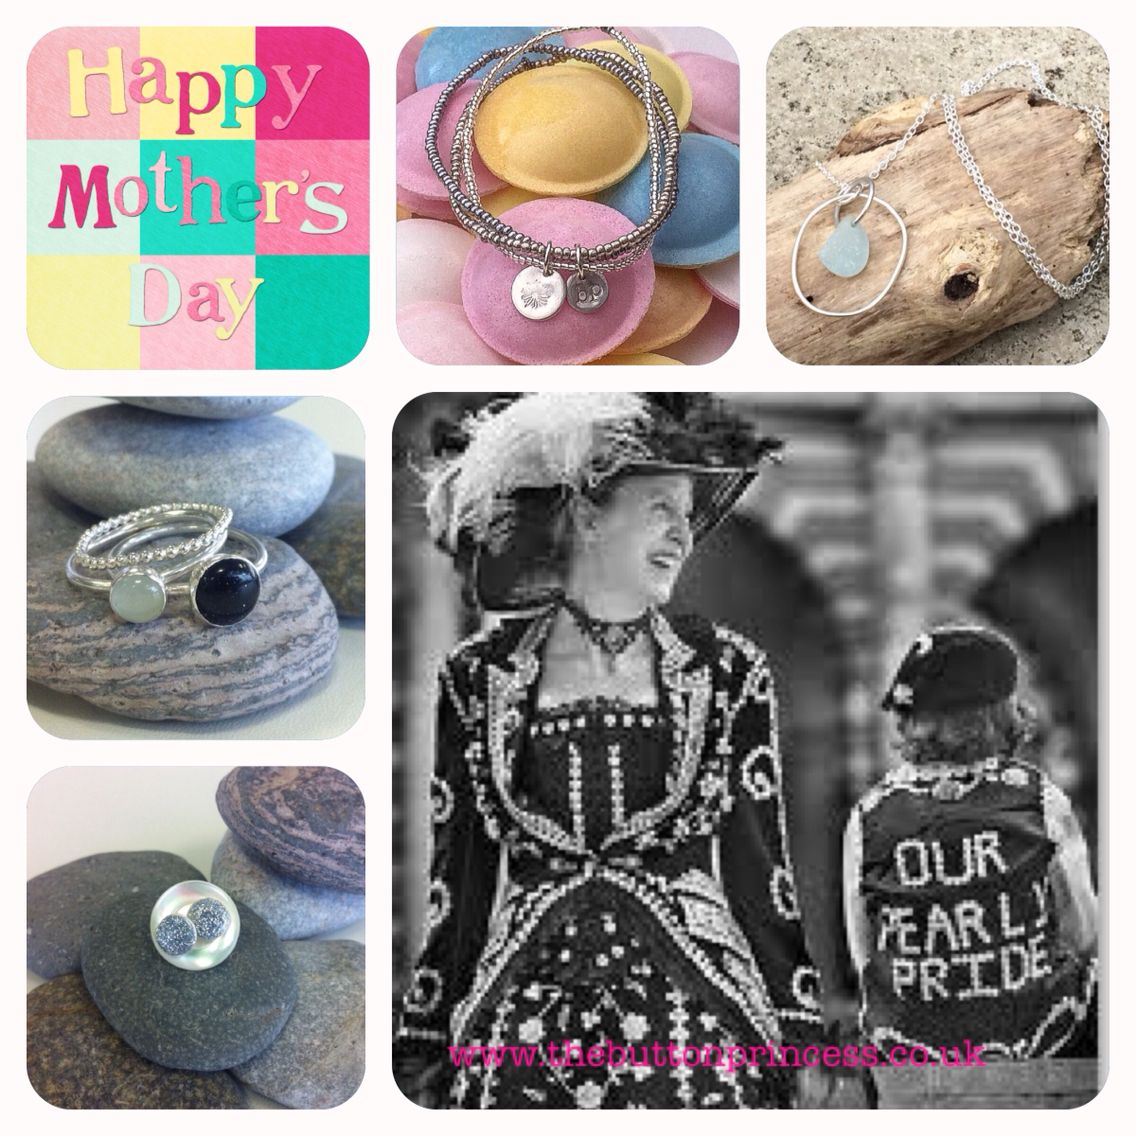 Three weeks today is Mother's Day...here's a small selection of Button silver available now at www.thebuttonprincess.co.uk   #jewellery #jewelry #silver #handmade #original #mothersday   www.thebuttonprincess.co.uk